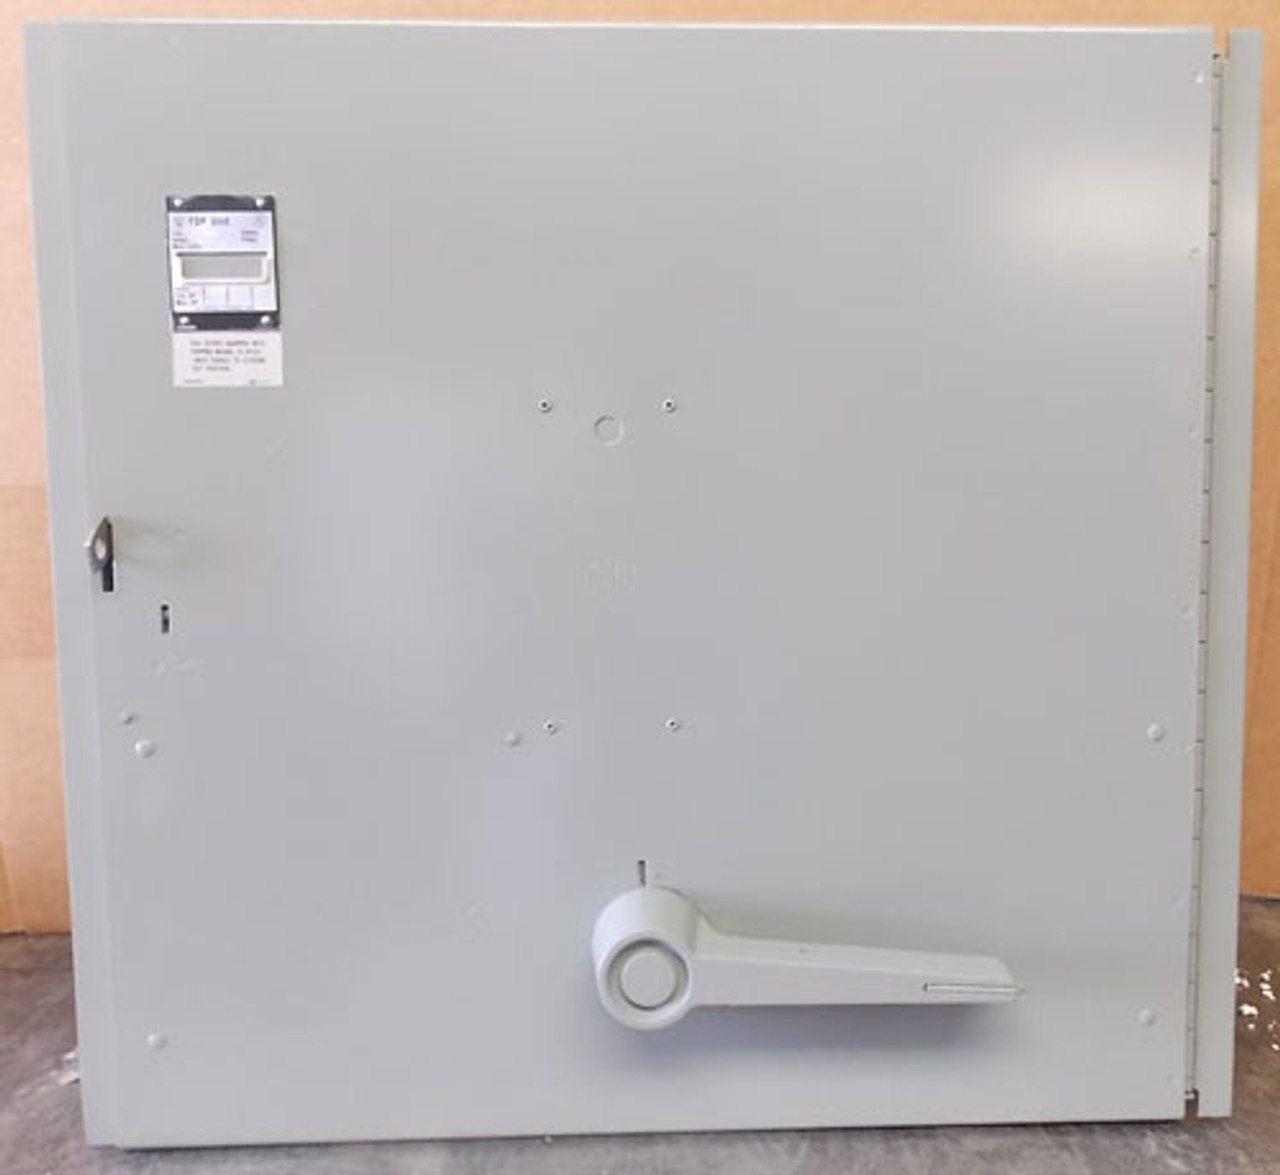 Sylvania FDPS367 3P 800A 600V Vertical Fusible Panel Switch - Reconditioned